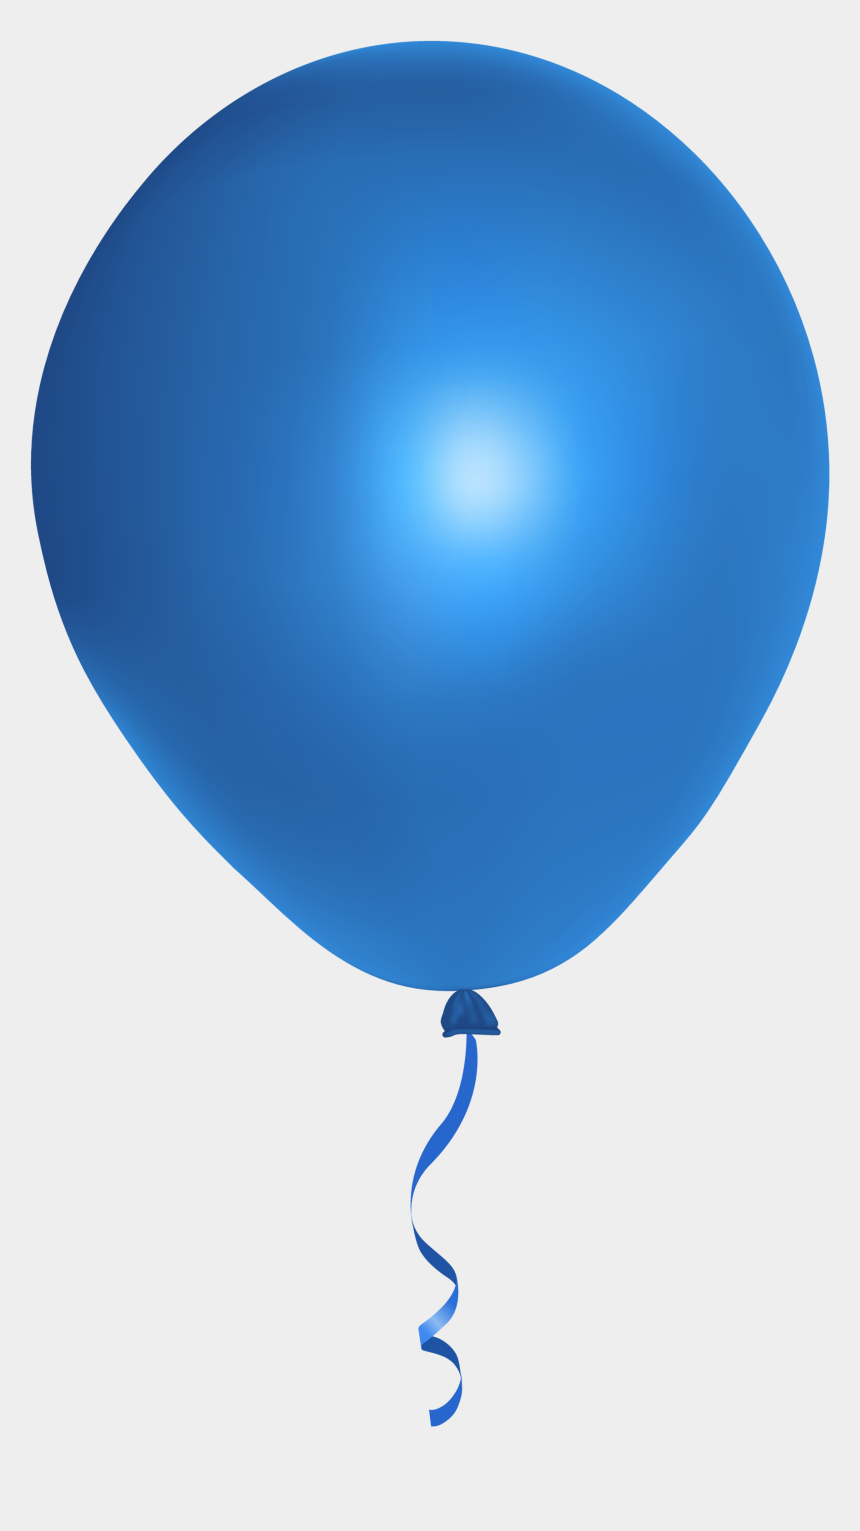 balloons clipart, Cartoons - Balloon Free Png Transparent Background Images Free - Blue Balloon Png Transparent